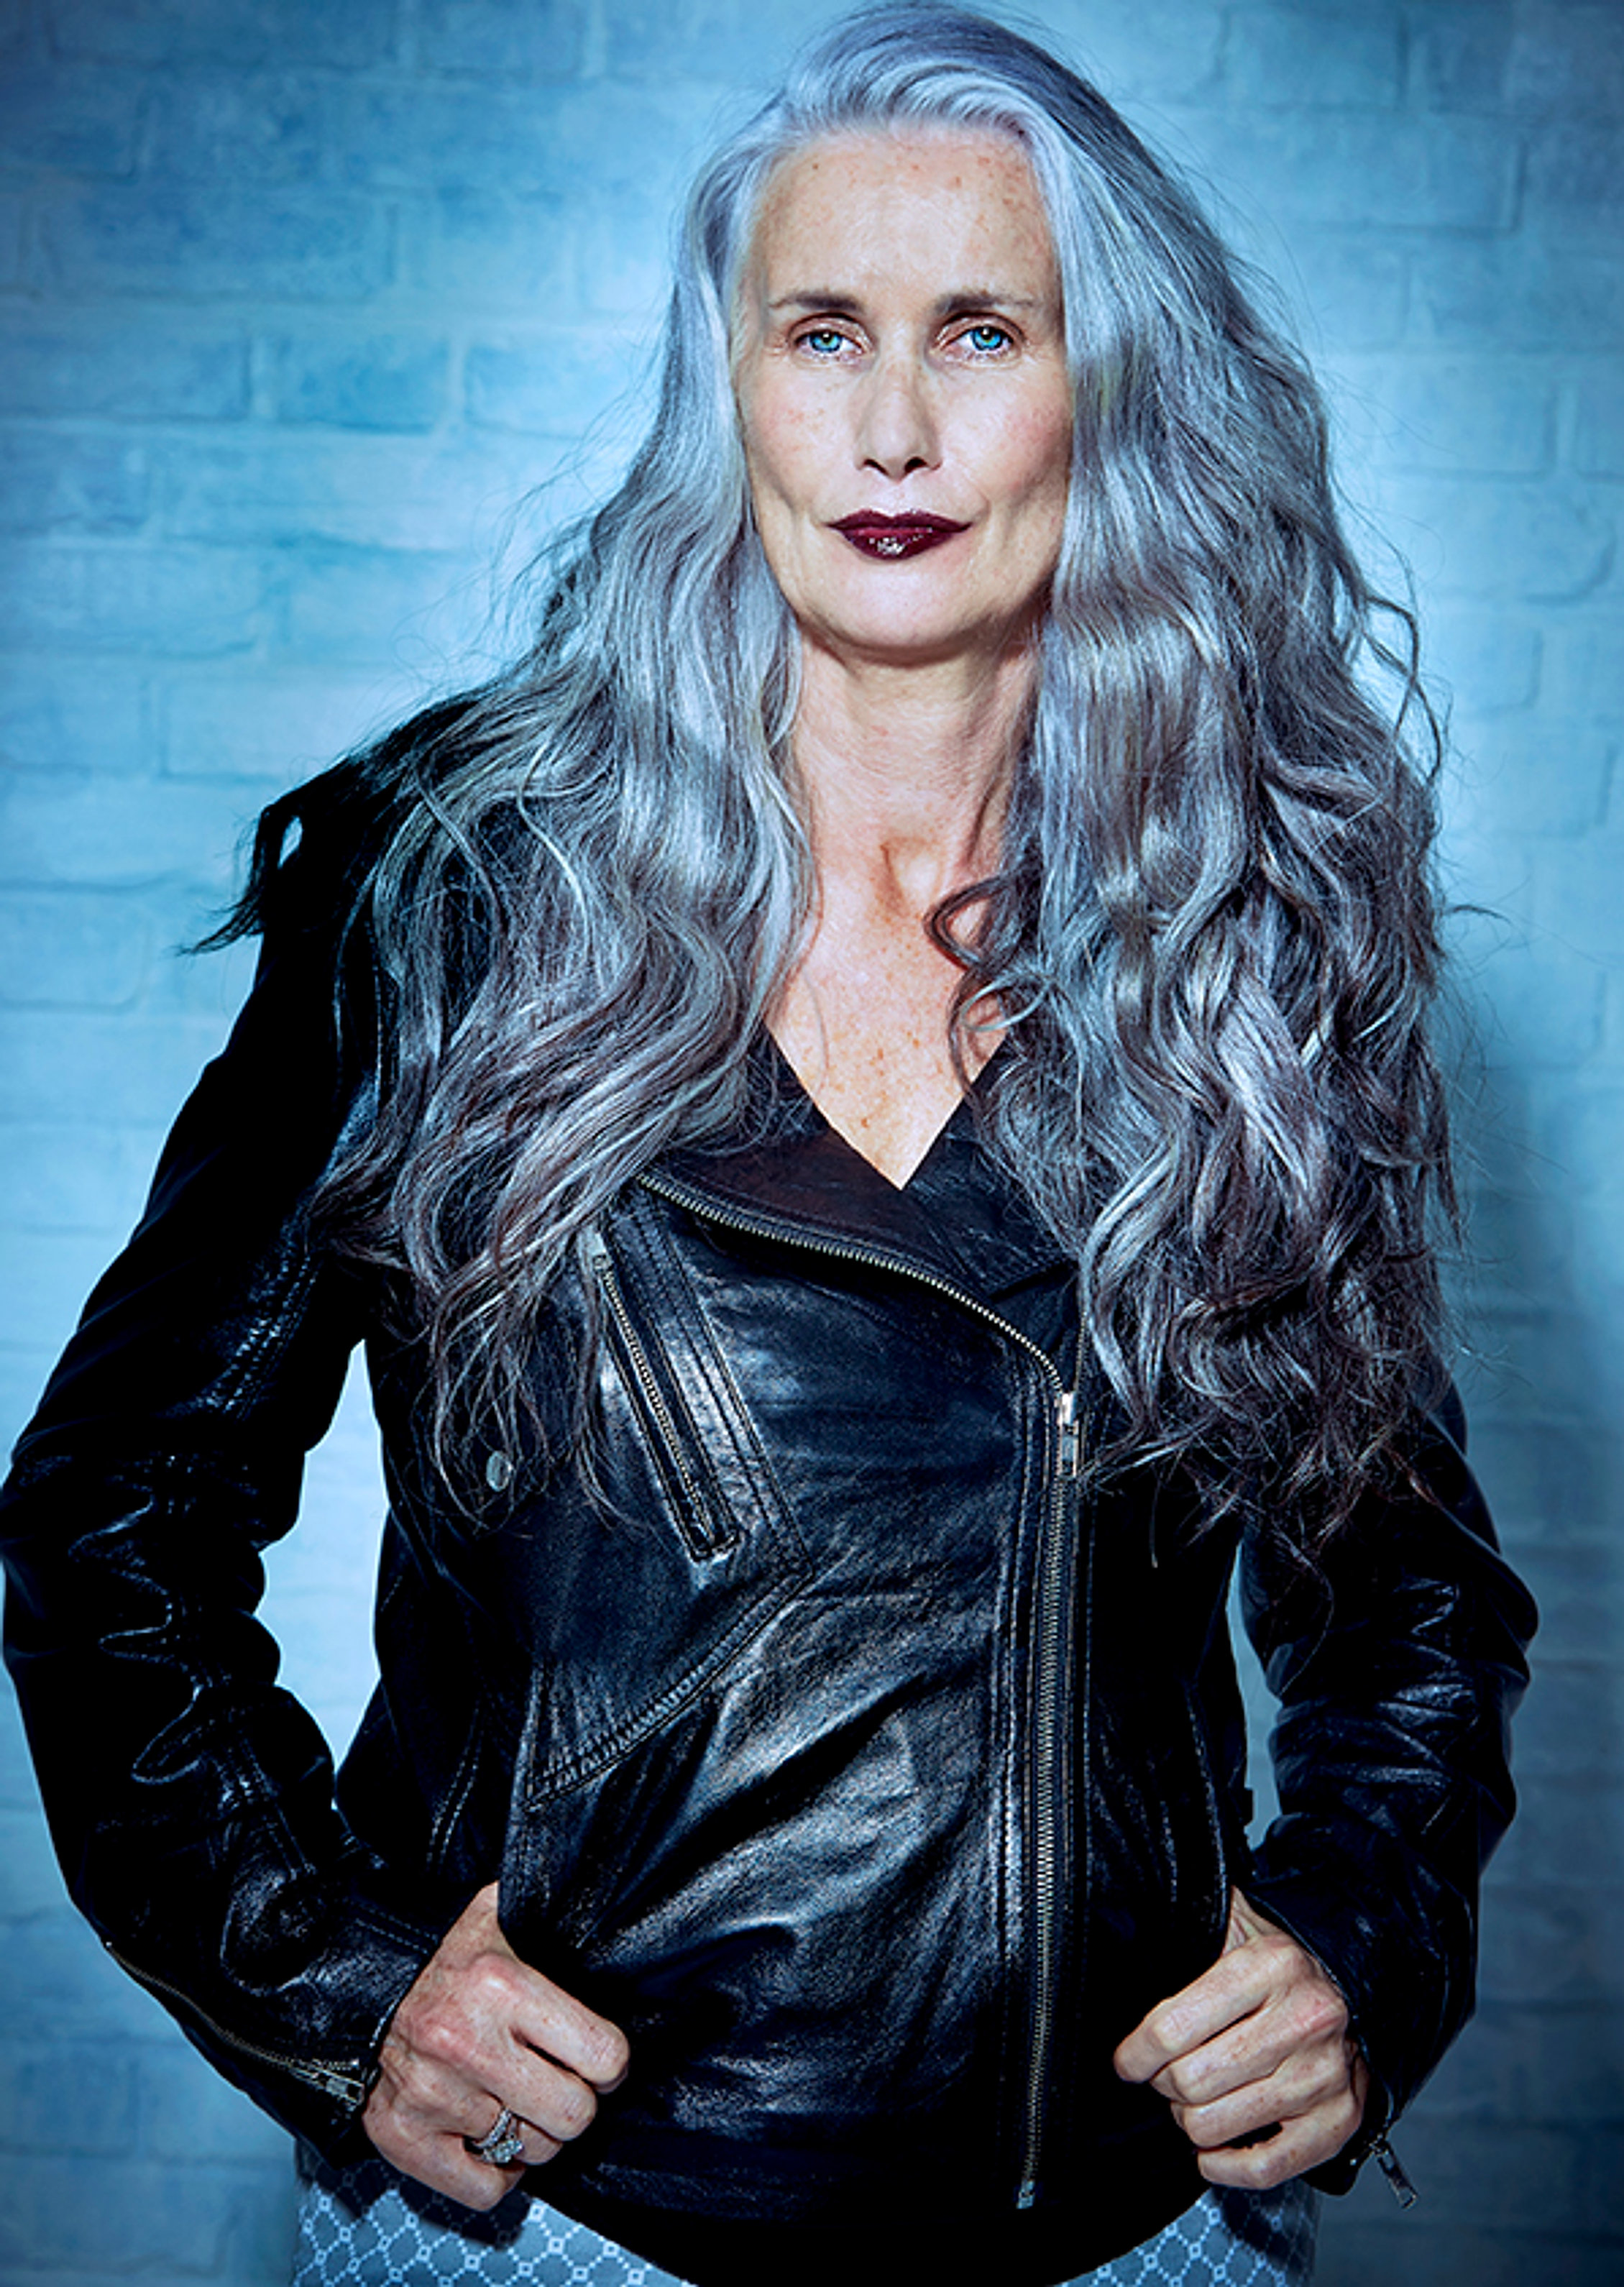 Older Models In Fashion Campaigns